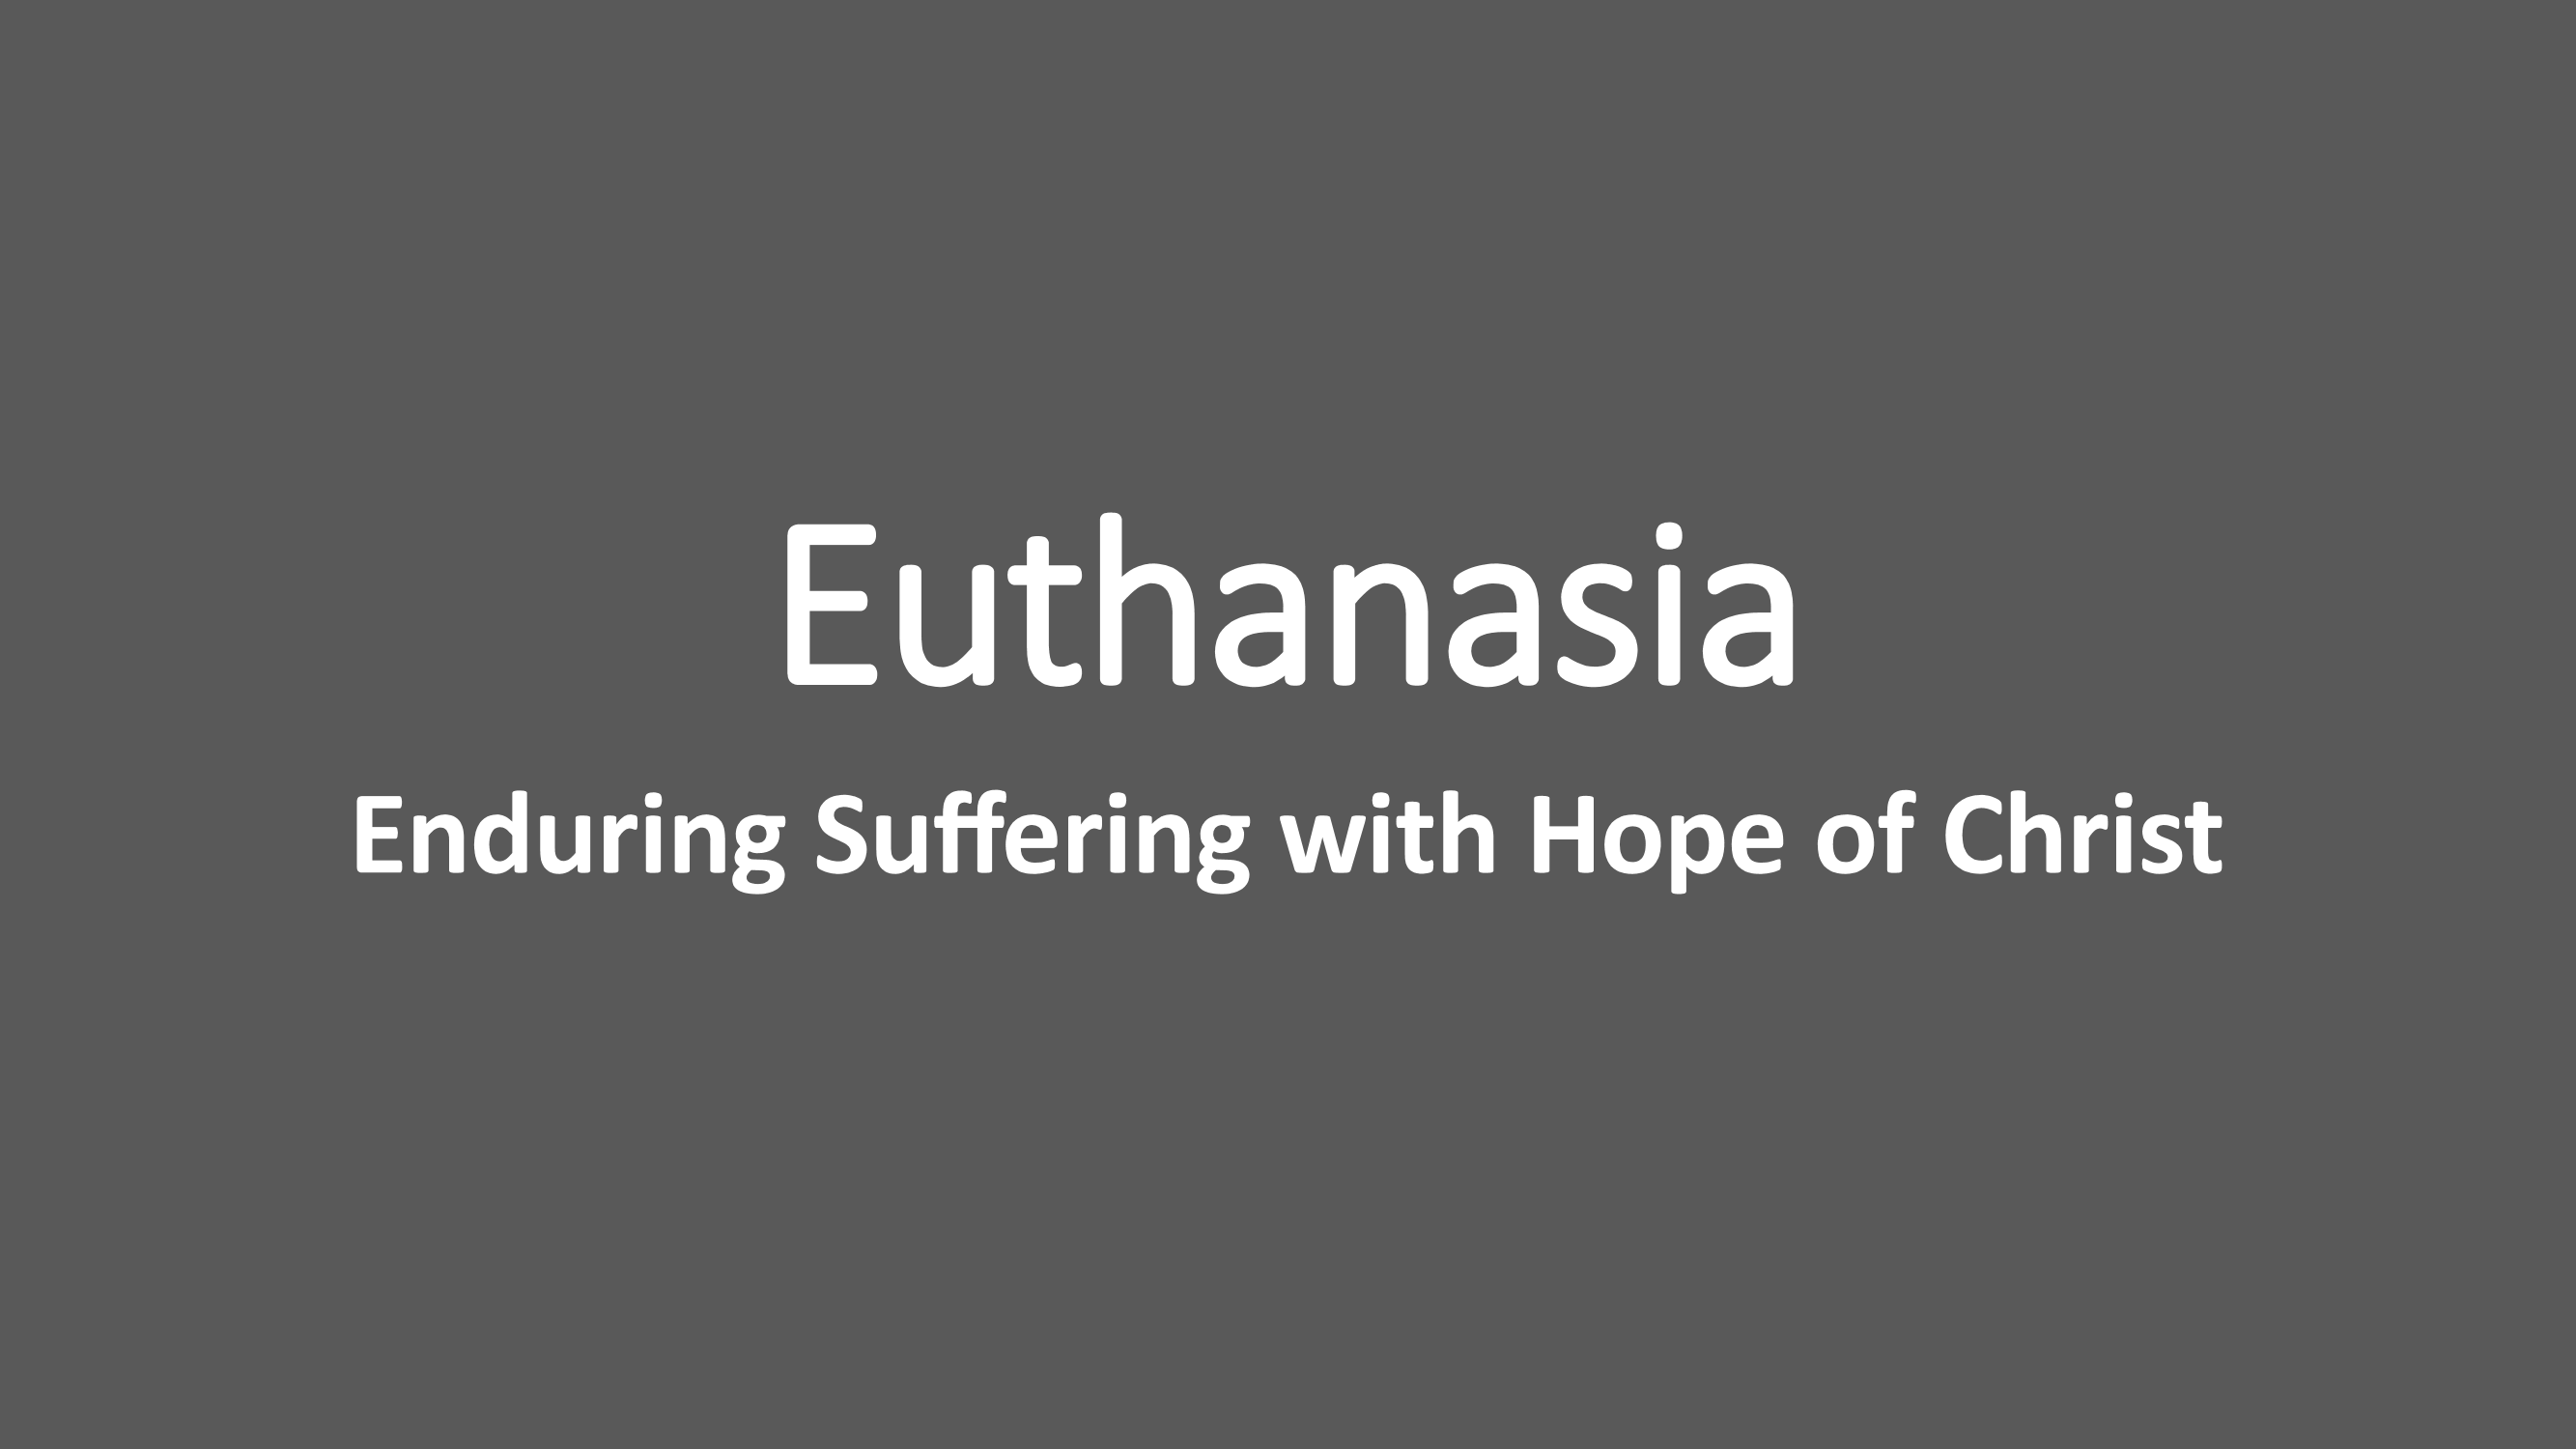 Euthanasia and Enduring Suffering